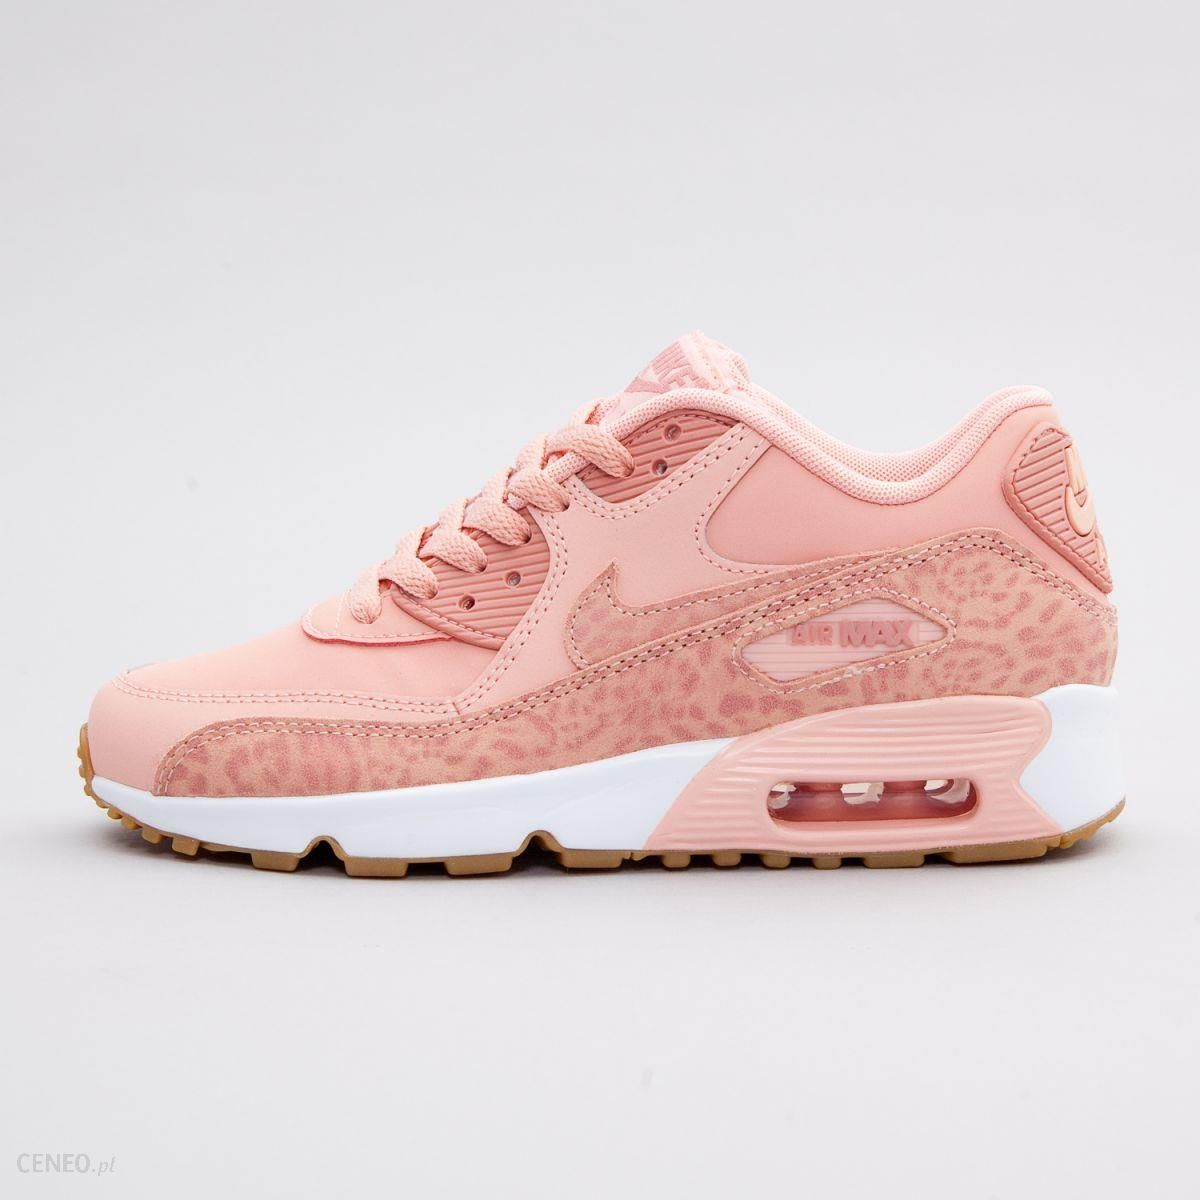 Nike AIR MAX 90 LEATHER SE GG 897987 601 Ceny i opinie